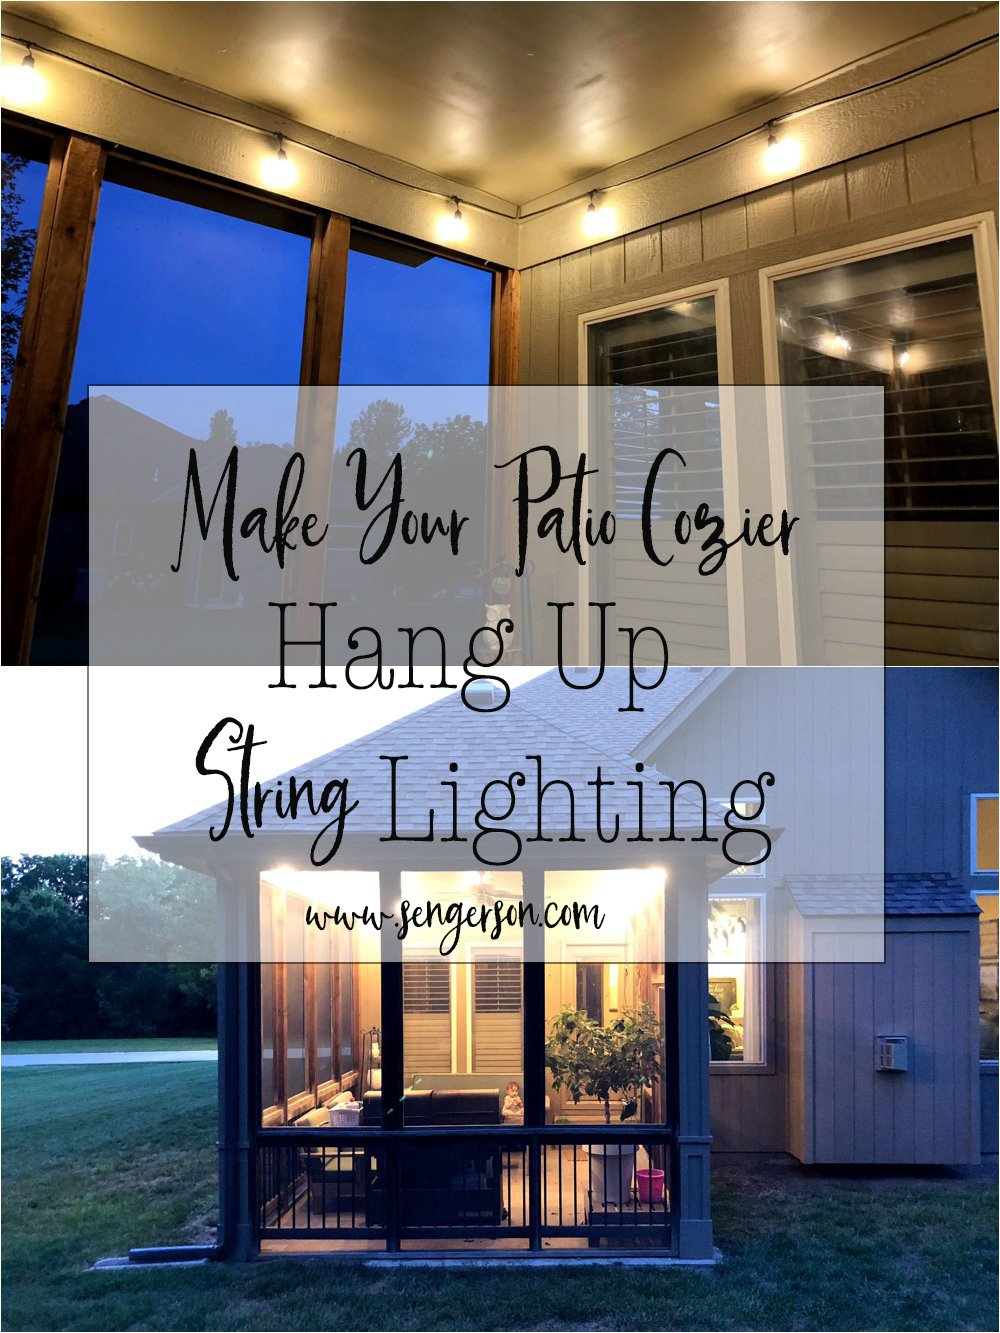 Considerations when hanging stright lighting outside as an extension to your living space